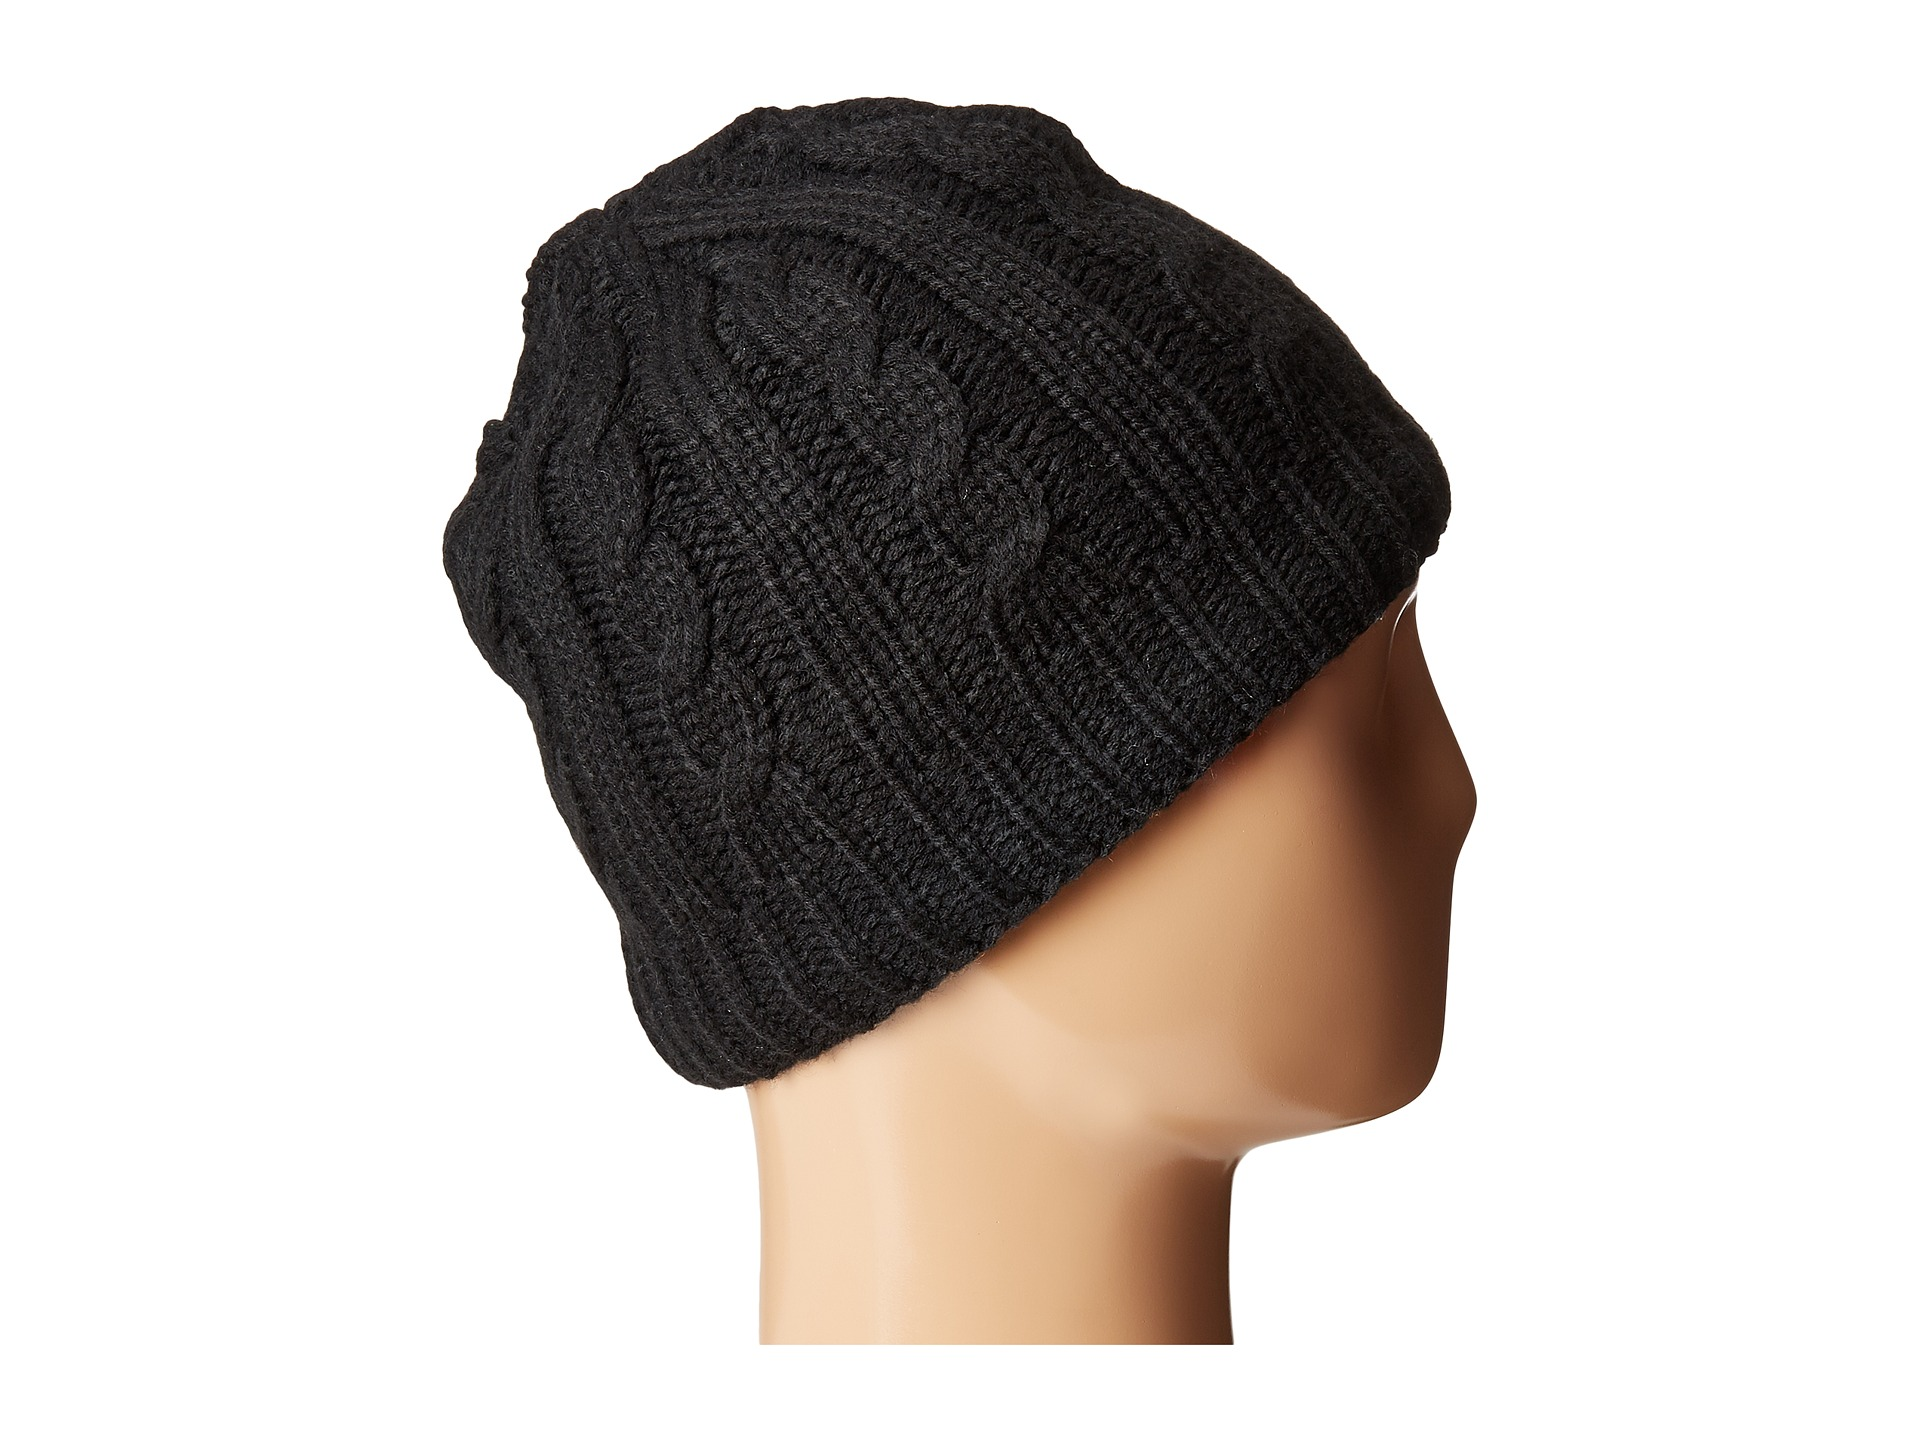 Tommy Hilfiger Fleece Lined Cable Hat Black Zappos Com